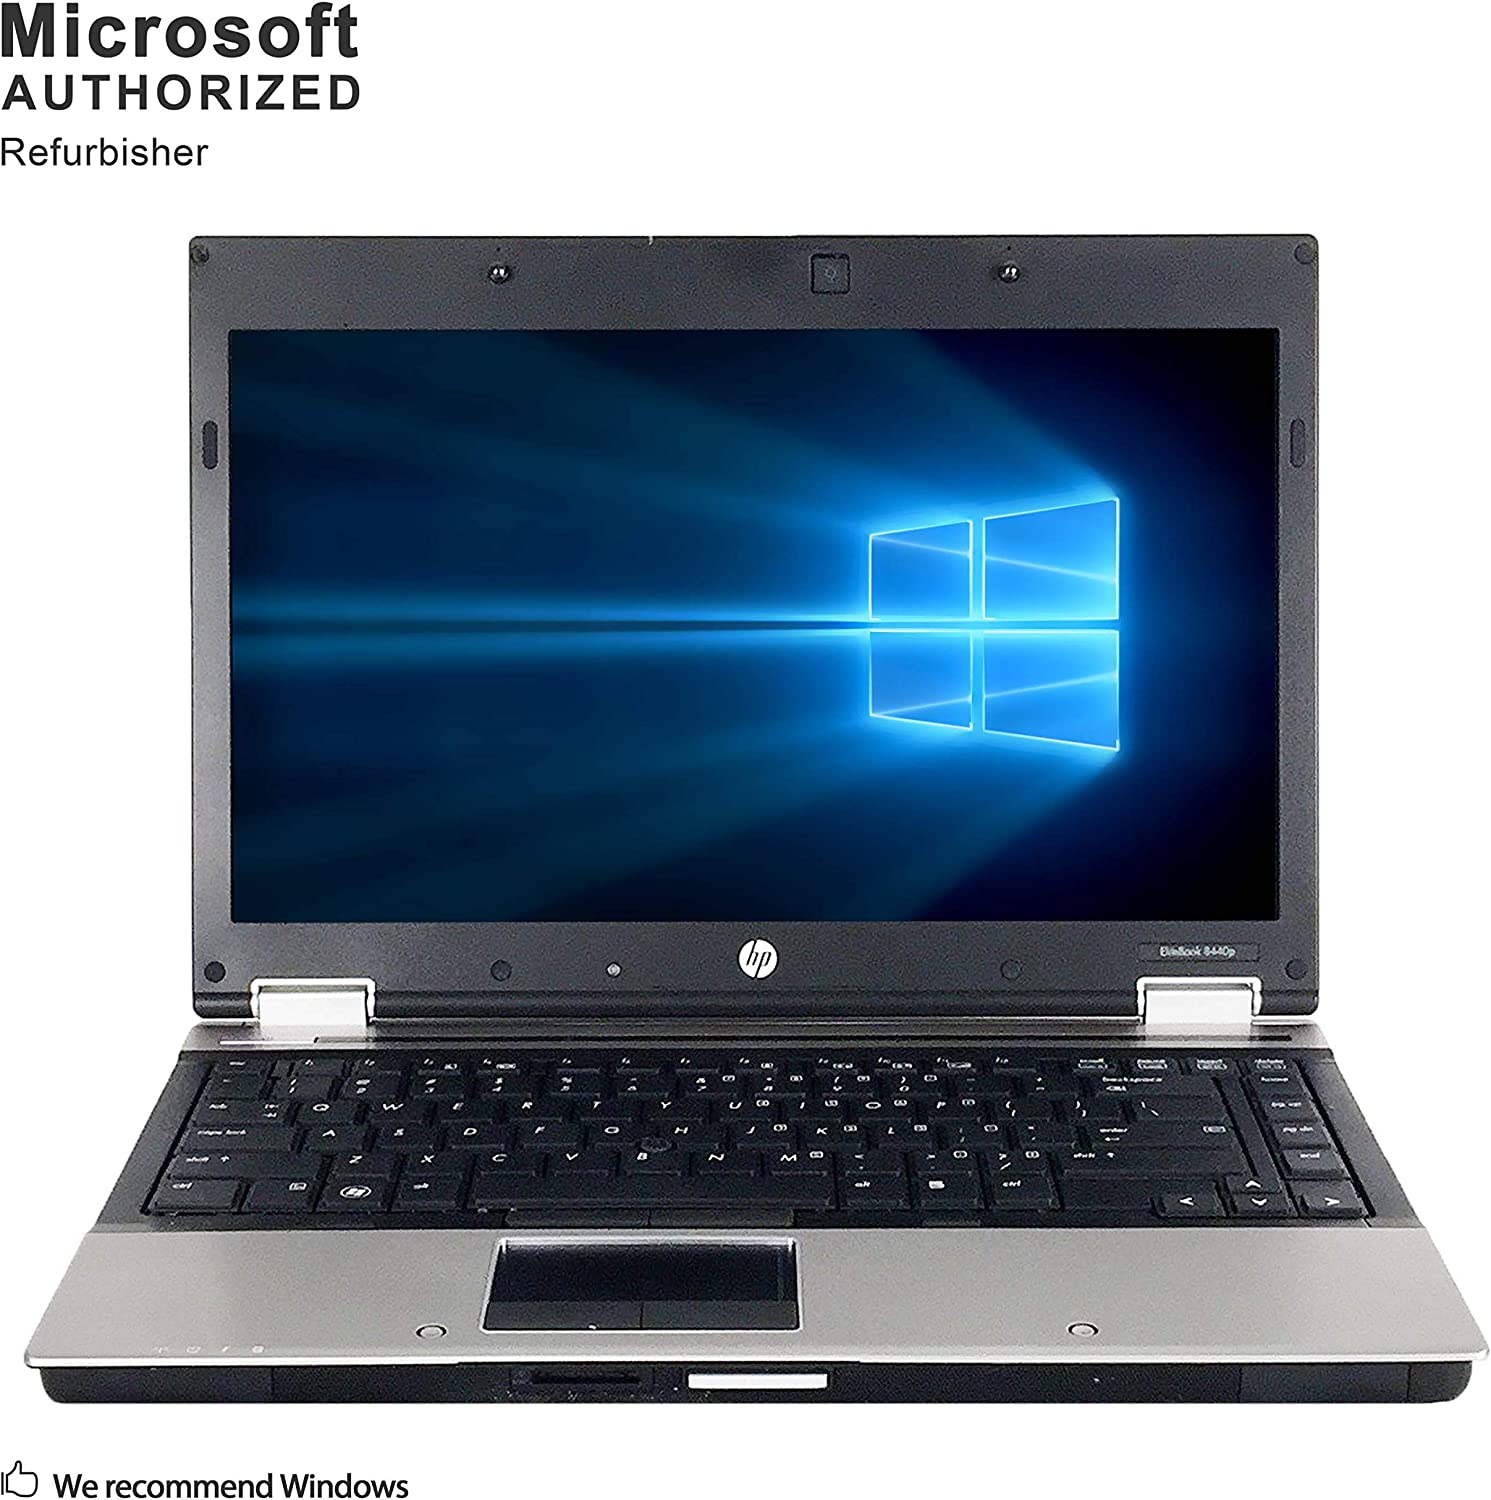 HP EliteBook 8440p 14 Inch Business Laptop, Intel Core i5 520M up to 2.93GHz, 4G DDR3, 320G, WiFi, DVD, VGA, DP, Windows 10 64 Bit-Multi-Language Supports English/Spanish/French(Renewed)